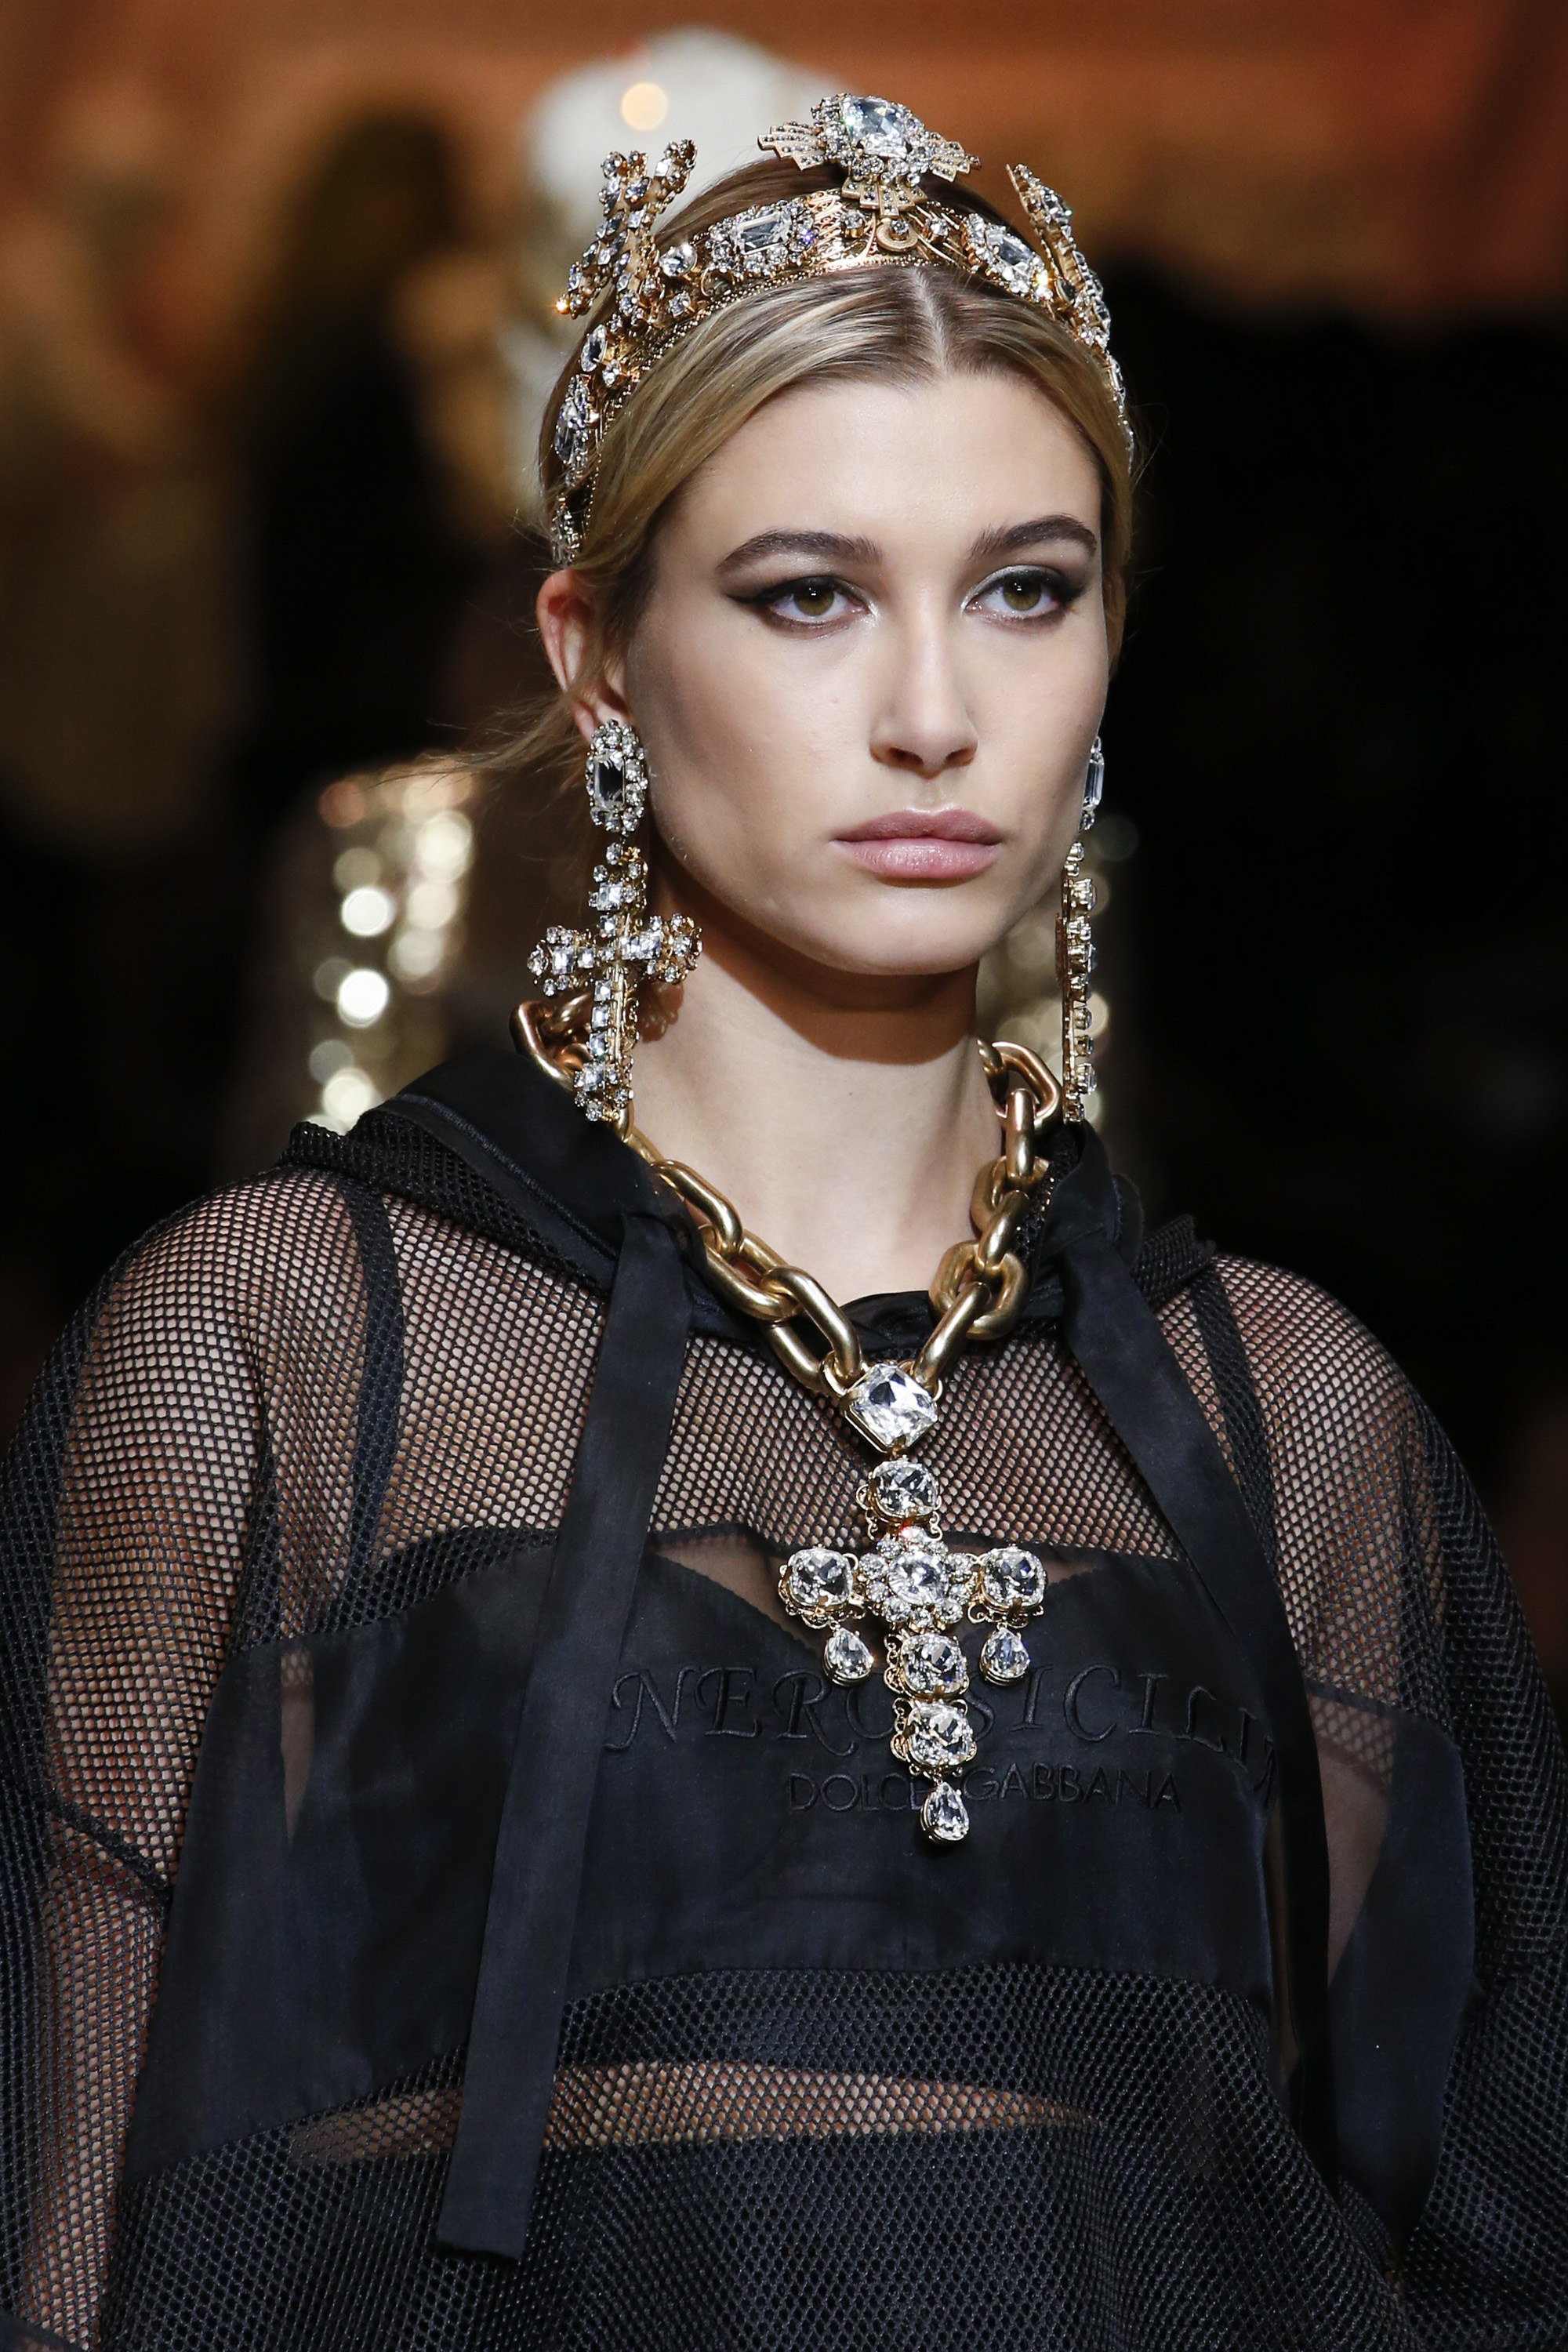 MILANO-Dolce & Gabbana Runway, Fall Winter 2018, Milan Fashion Week, Italy -  Model on the catwalk -Hailey Baldwin-Cara Taylor,   <P> Pictured: Models,Hailey Baldwin <B>Ref: SPL1663598  260218  </B><BR/> Picture by: NPictures / Splash News<BR/> </P><P> <B>Splash News and Pictures</B><BR/> Los Angeles:310-821-2666<BR/> New York:212-619-2666<BR/> London:870-934-2666<BR/> <span id=